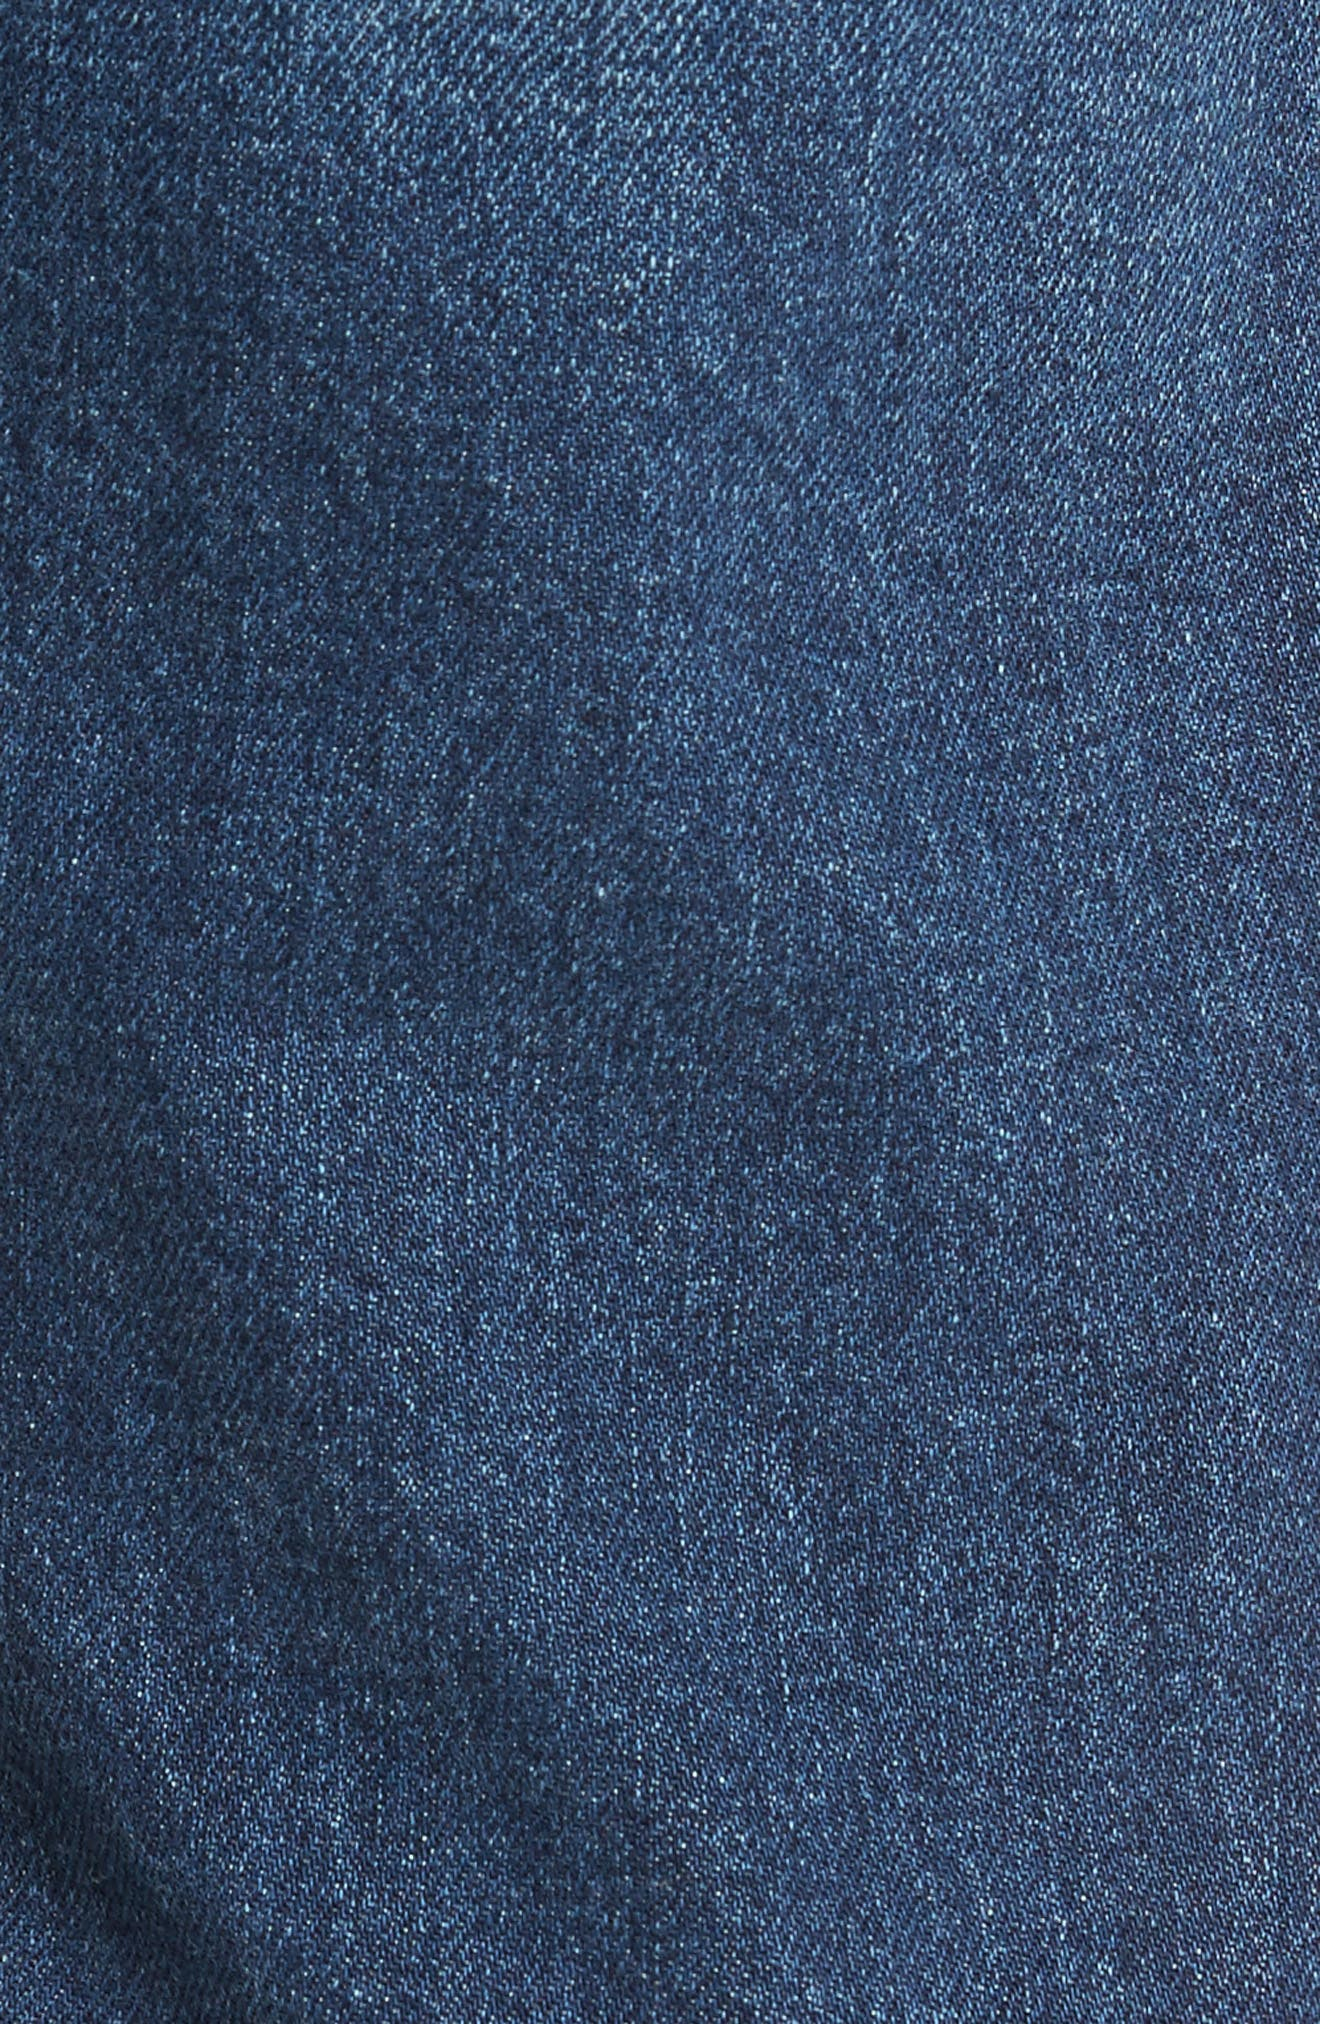 Ricky Relaxed Fit Jeans,                             Alternate thumbnail 5, color,                             Indigo Traveler